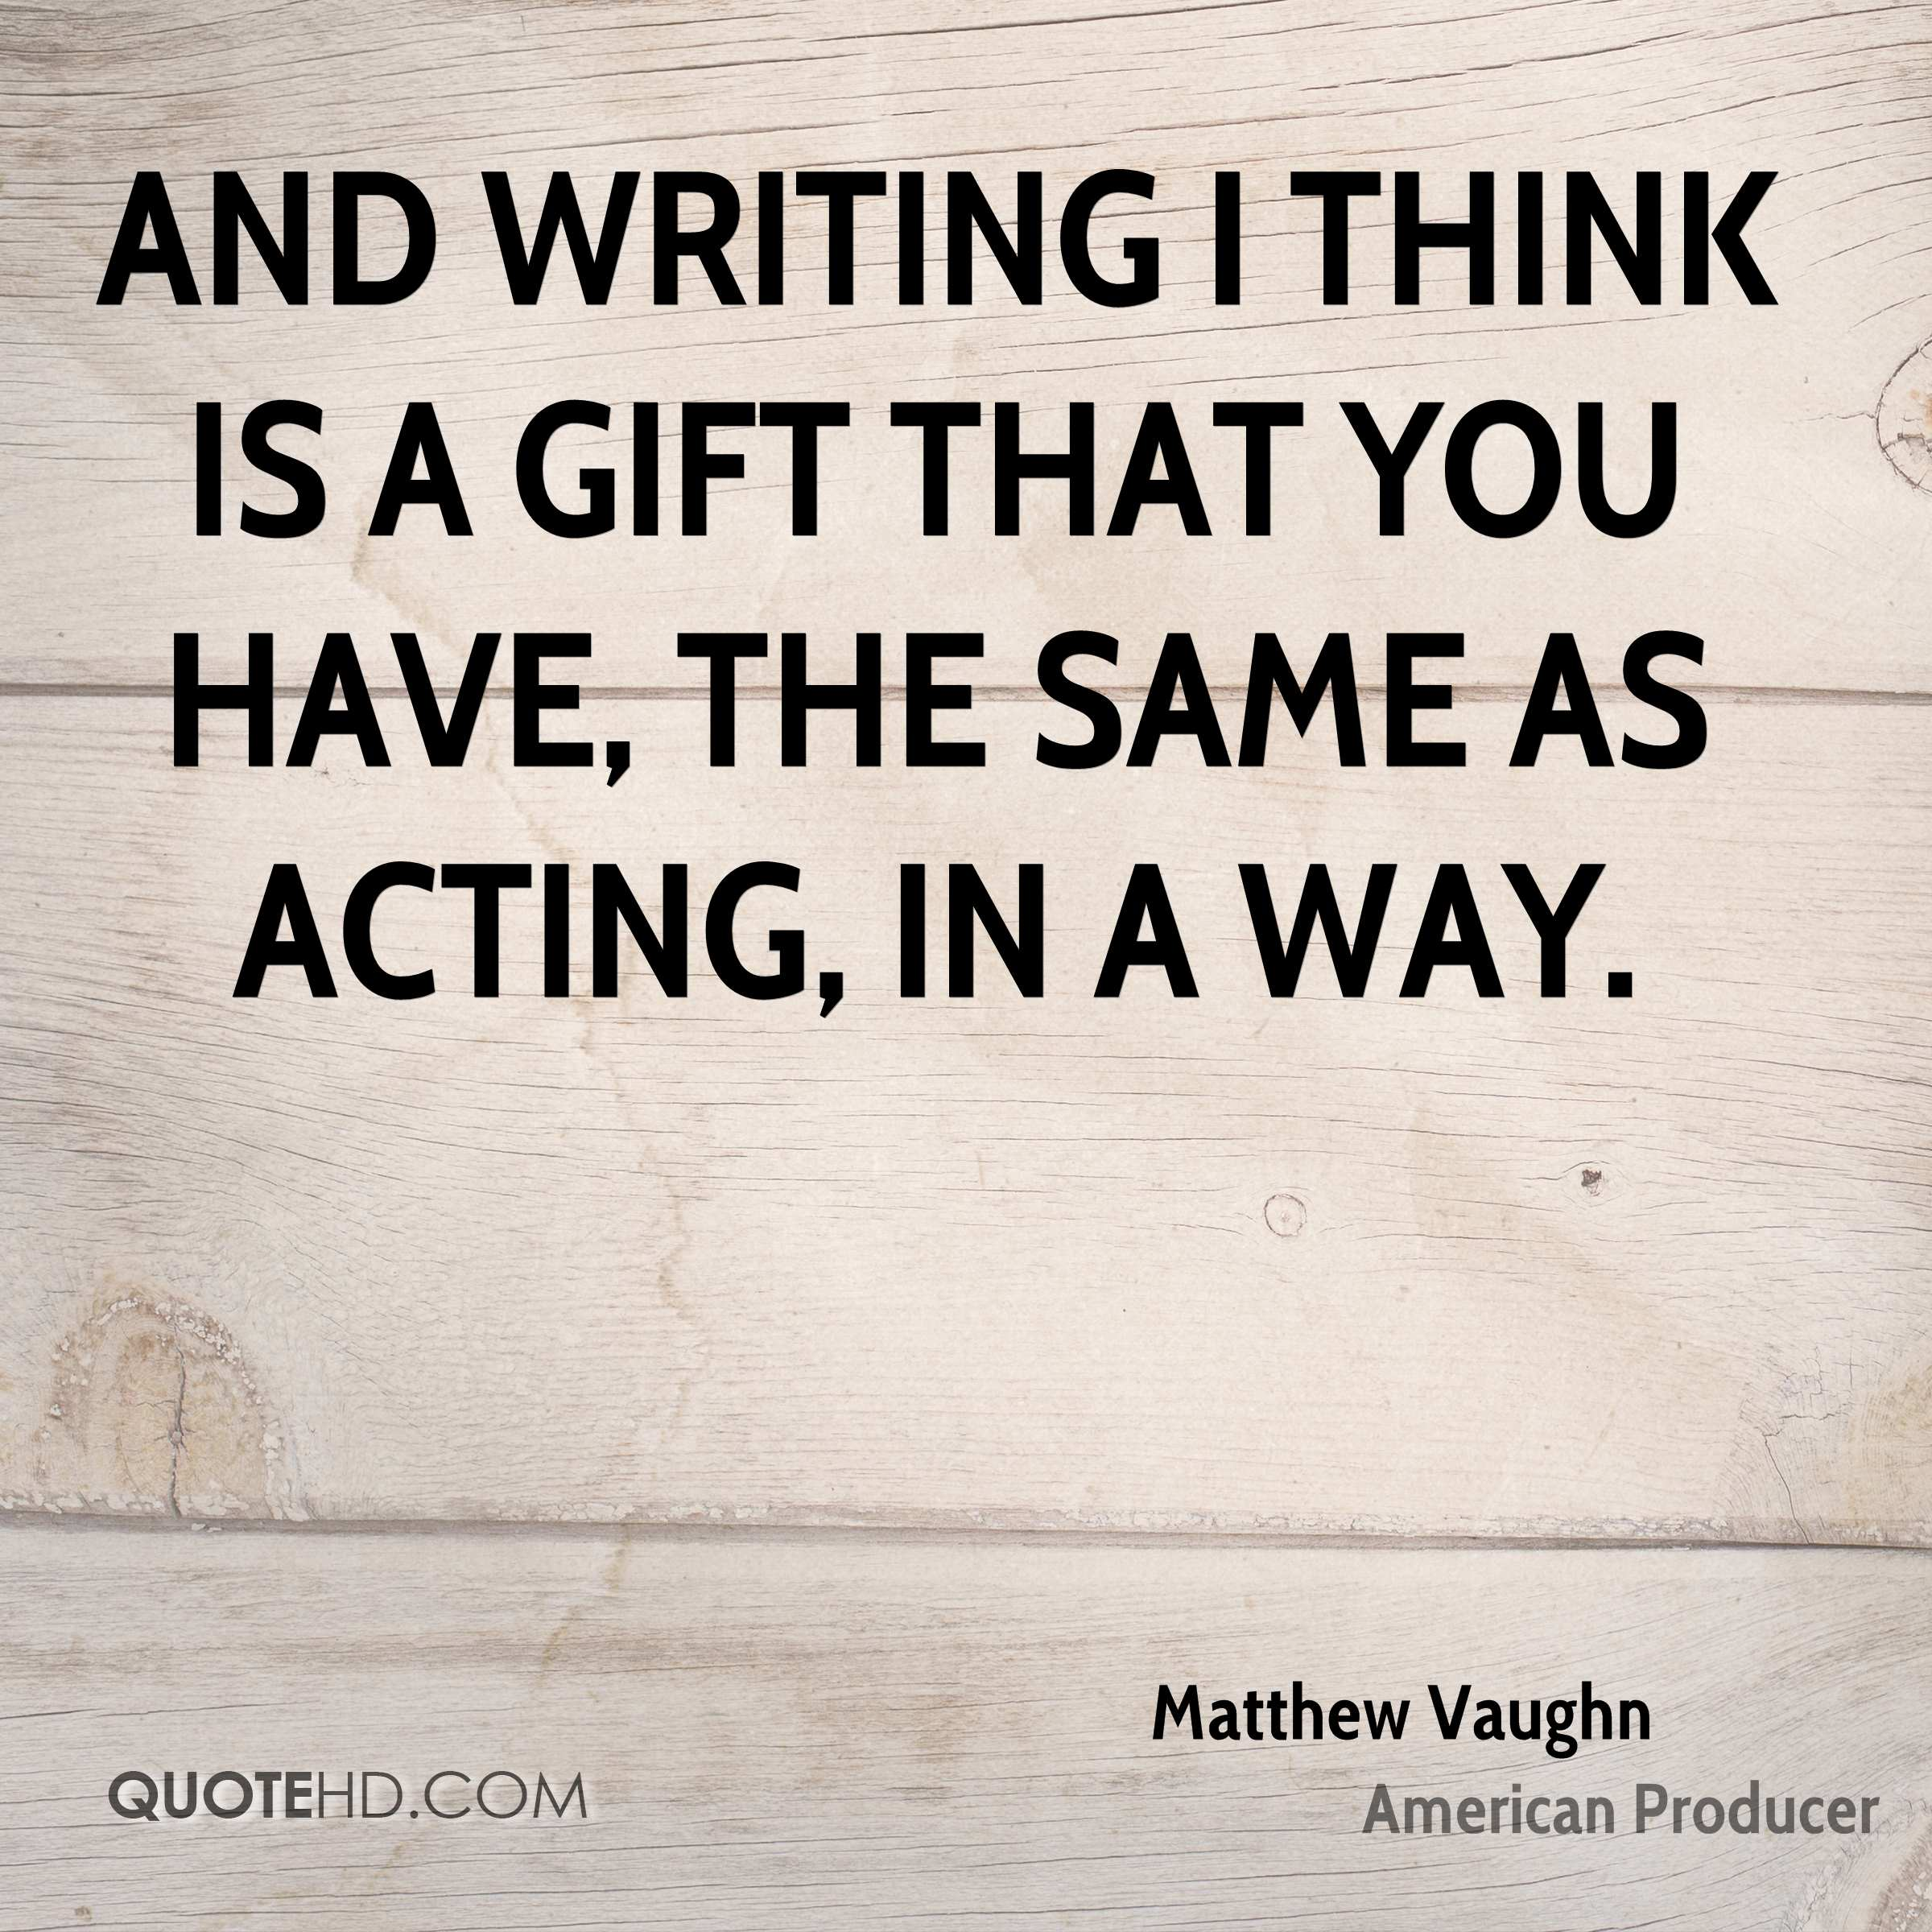 And writing I think is a gift that you have, the same as acting, in a way.